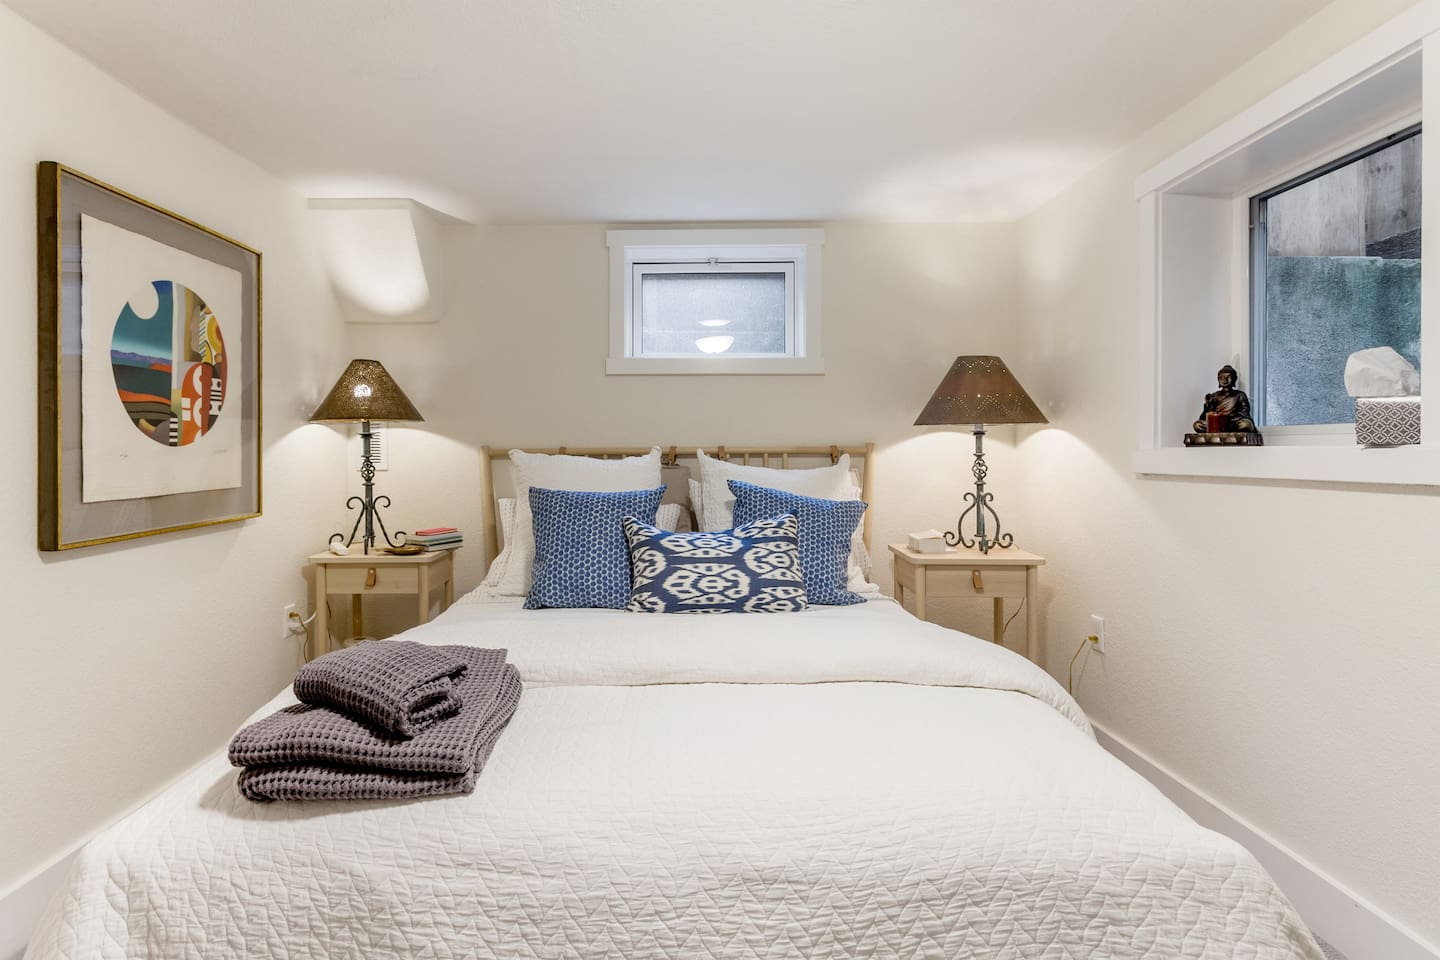 Our spa-like bedroom awaits you, with an organic latex mattress and organic cotton bedding.